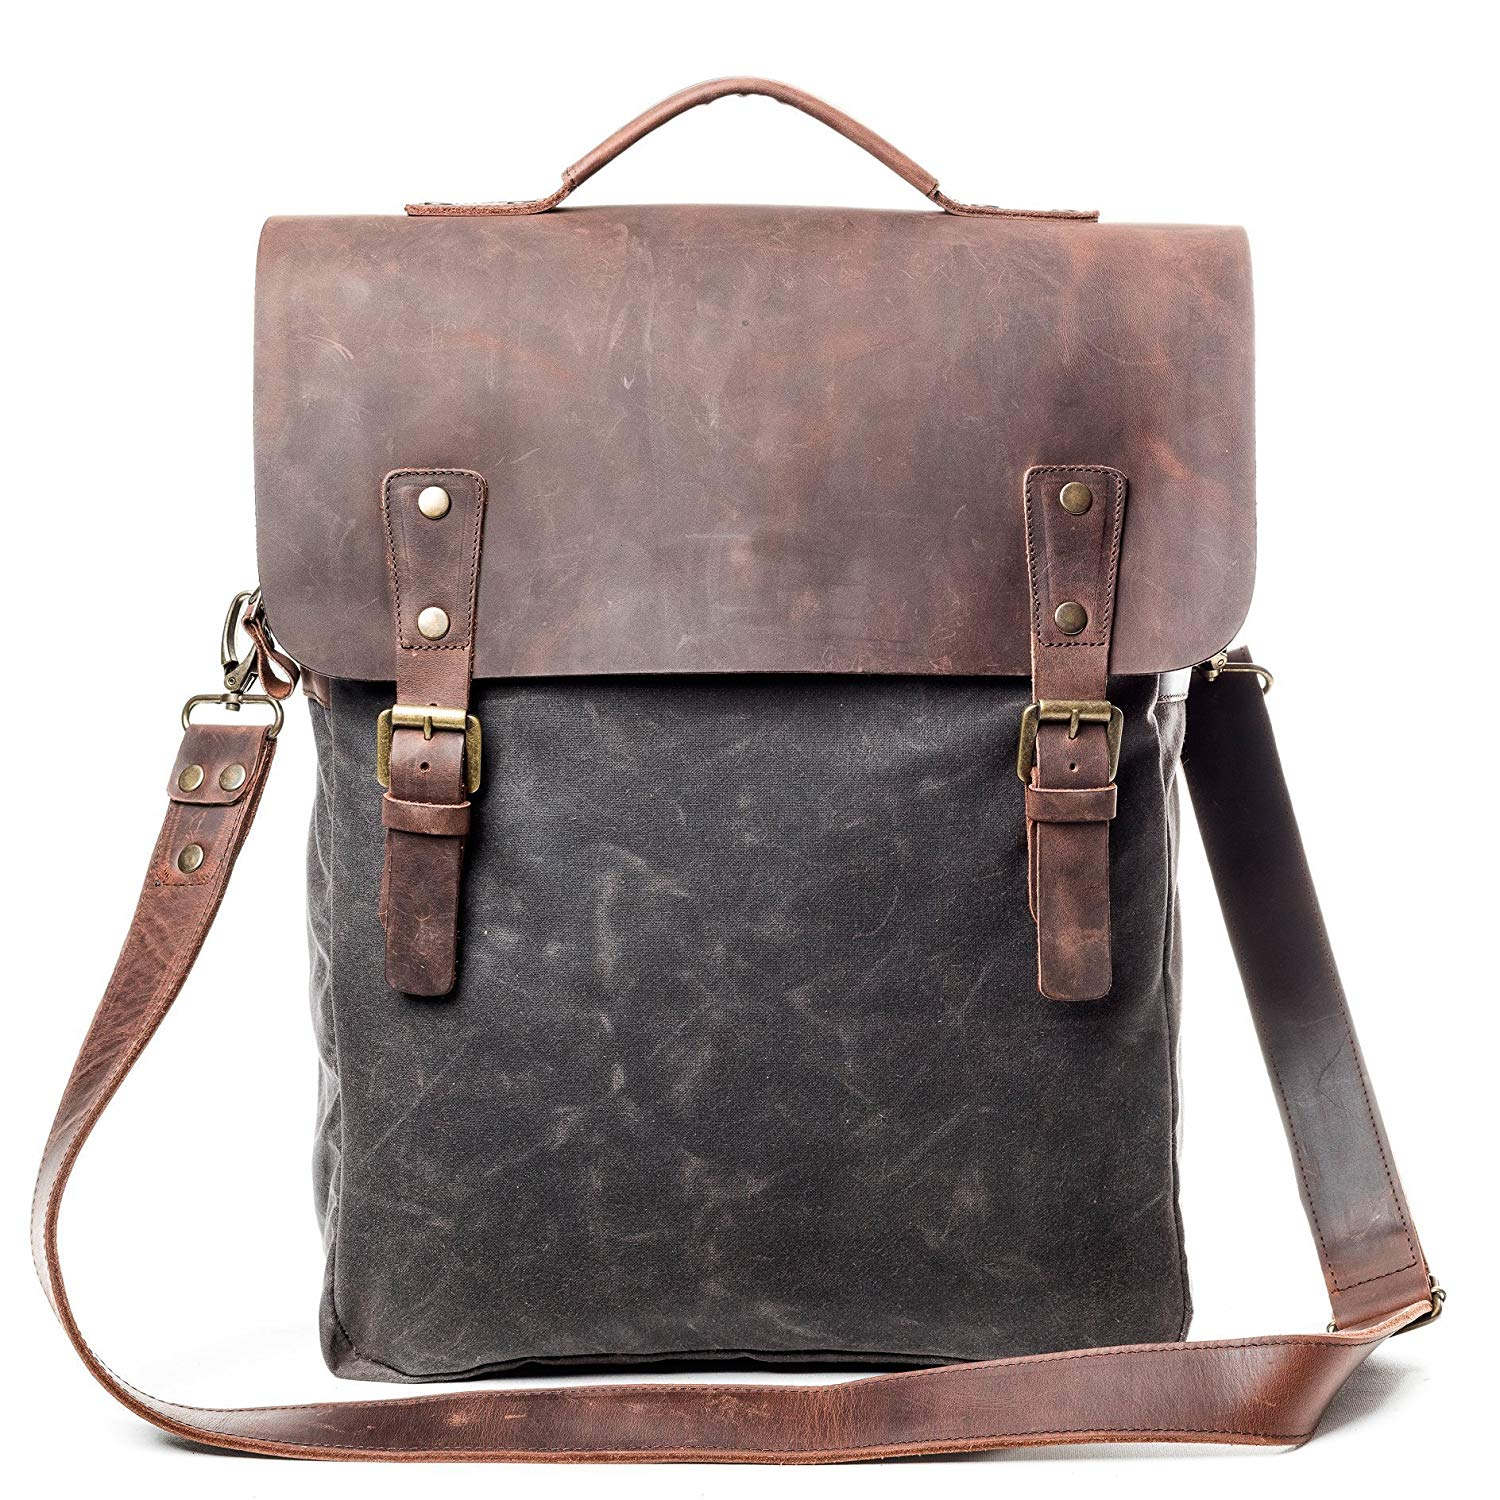 Vintage Handmade Slim Flap Backpack - Made From Waxed Canvas & Leather - High Quality Retro Laptop Rucksack With Waterproof Lining For Men And Women